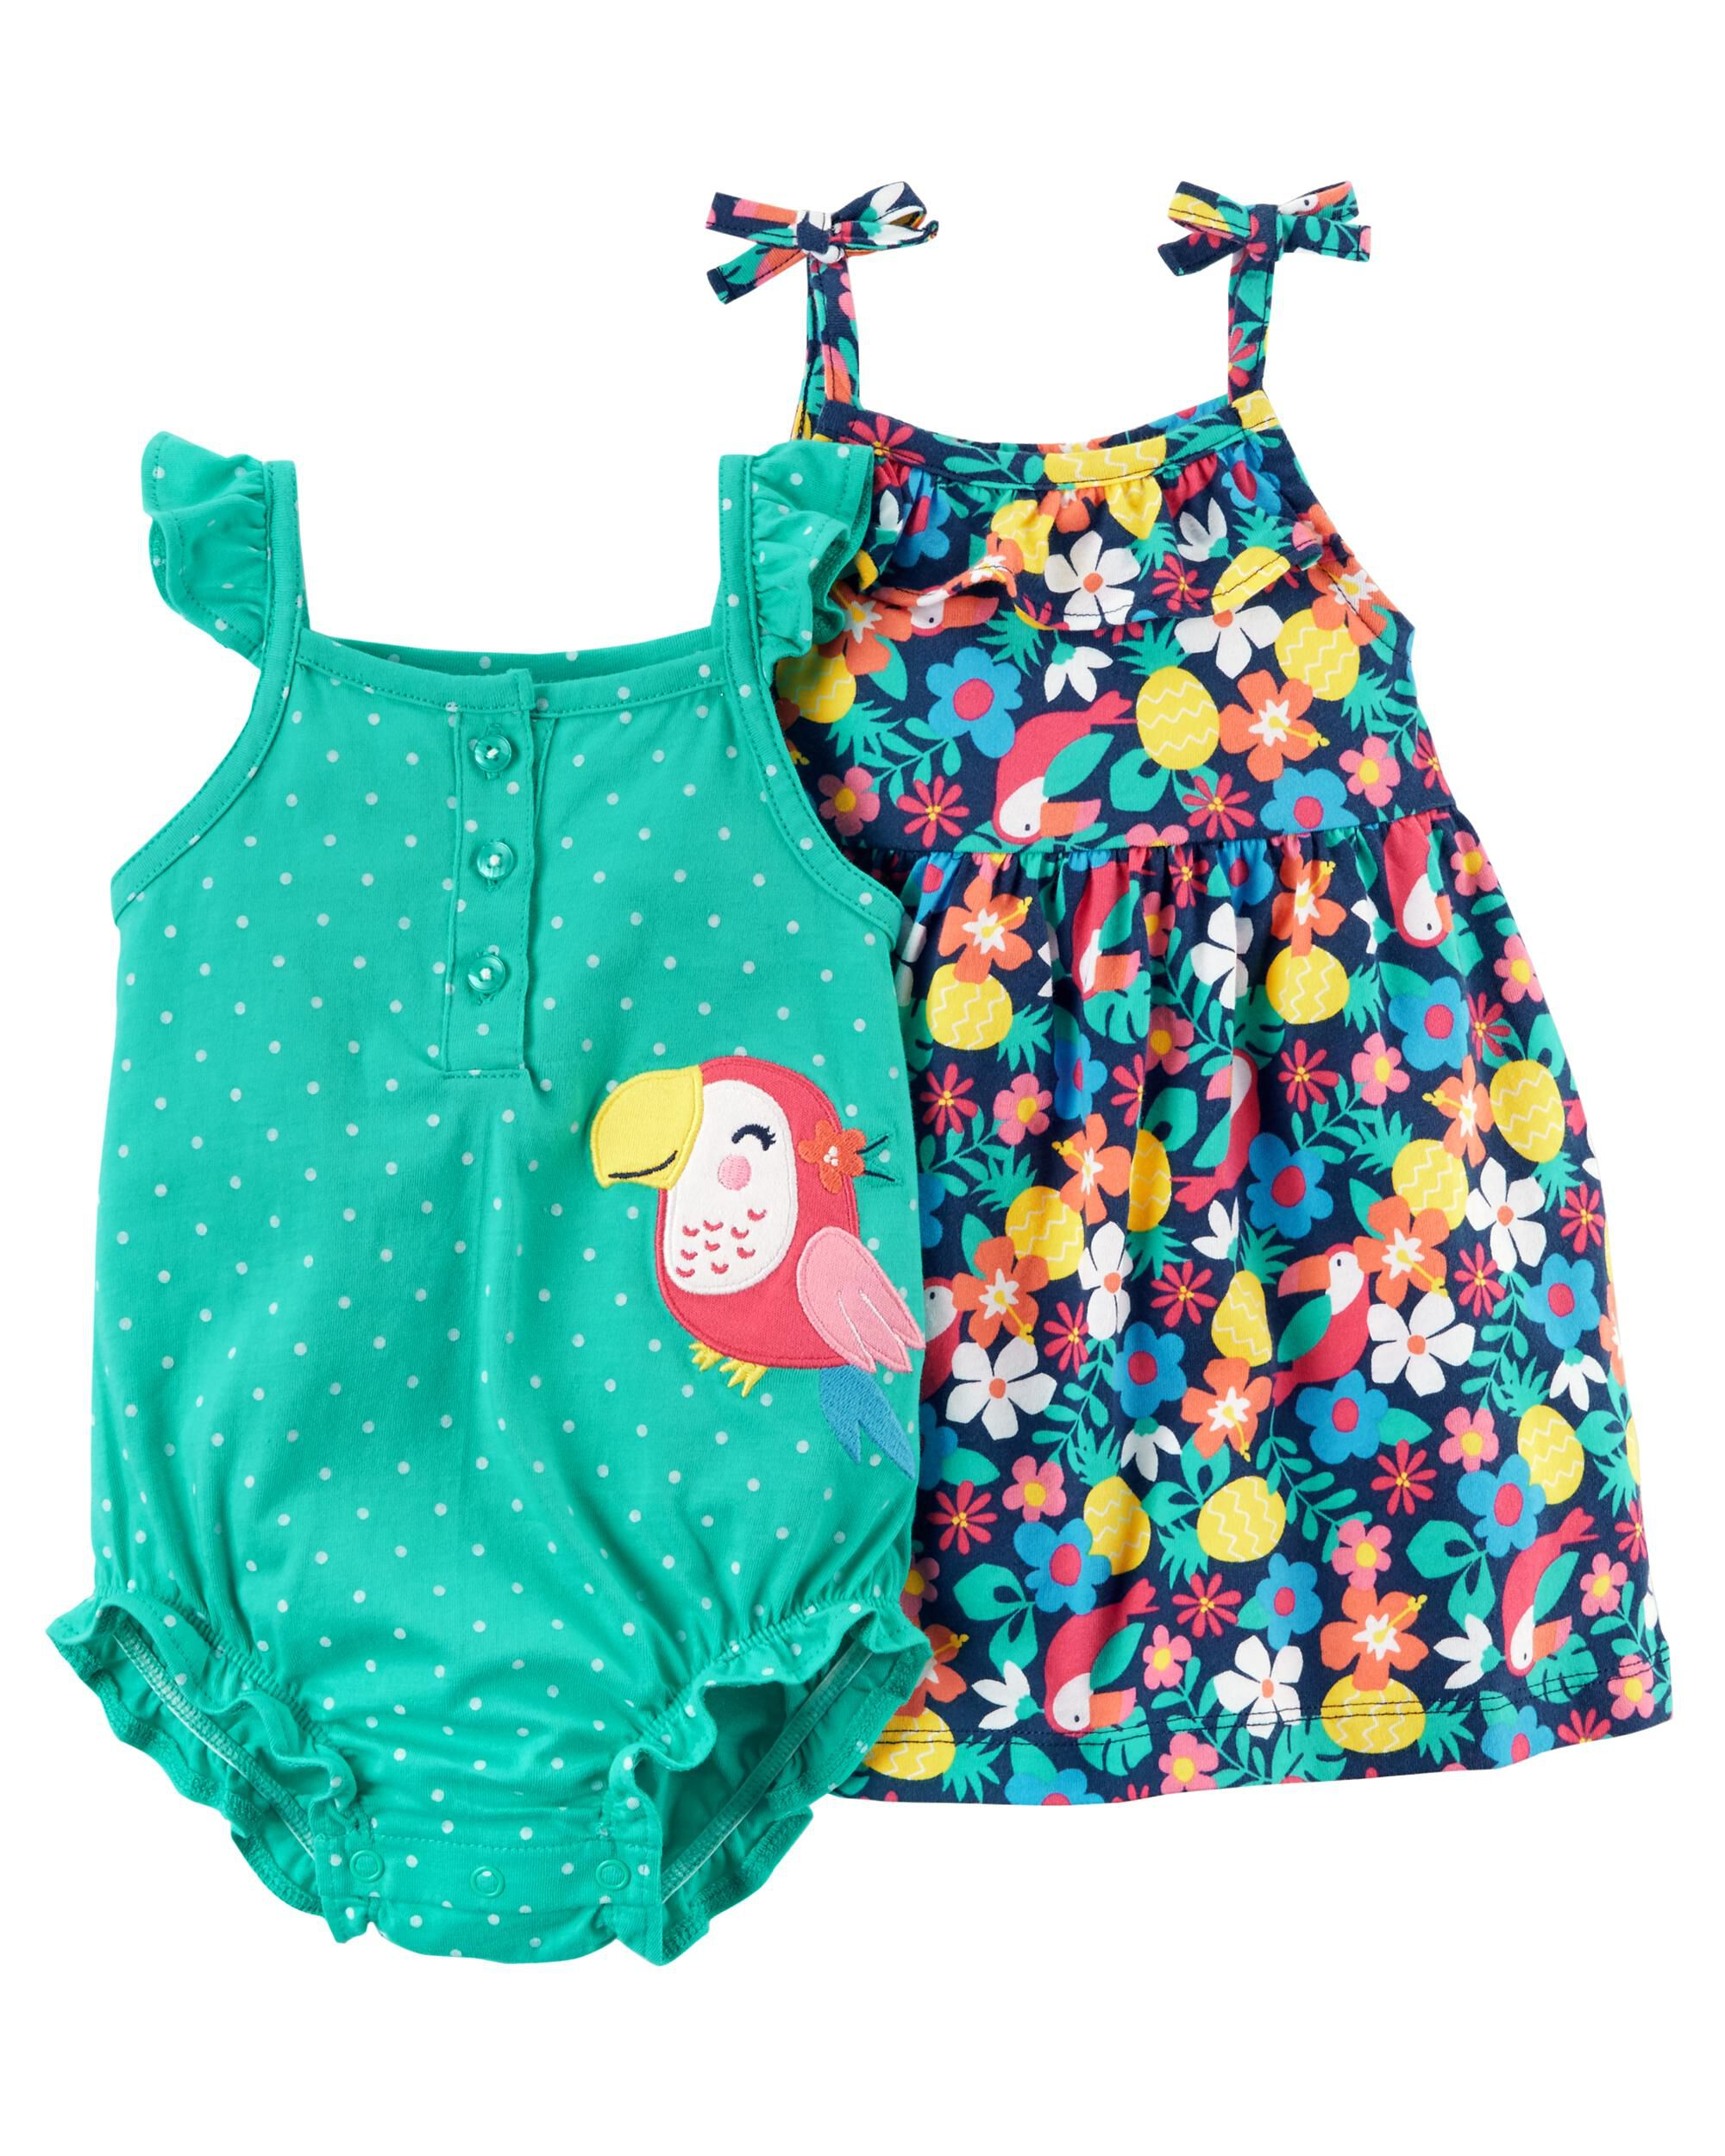 Baby Girl Set Of 2 Romper Clothing, Shoes & Accessories